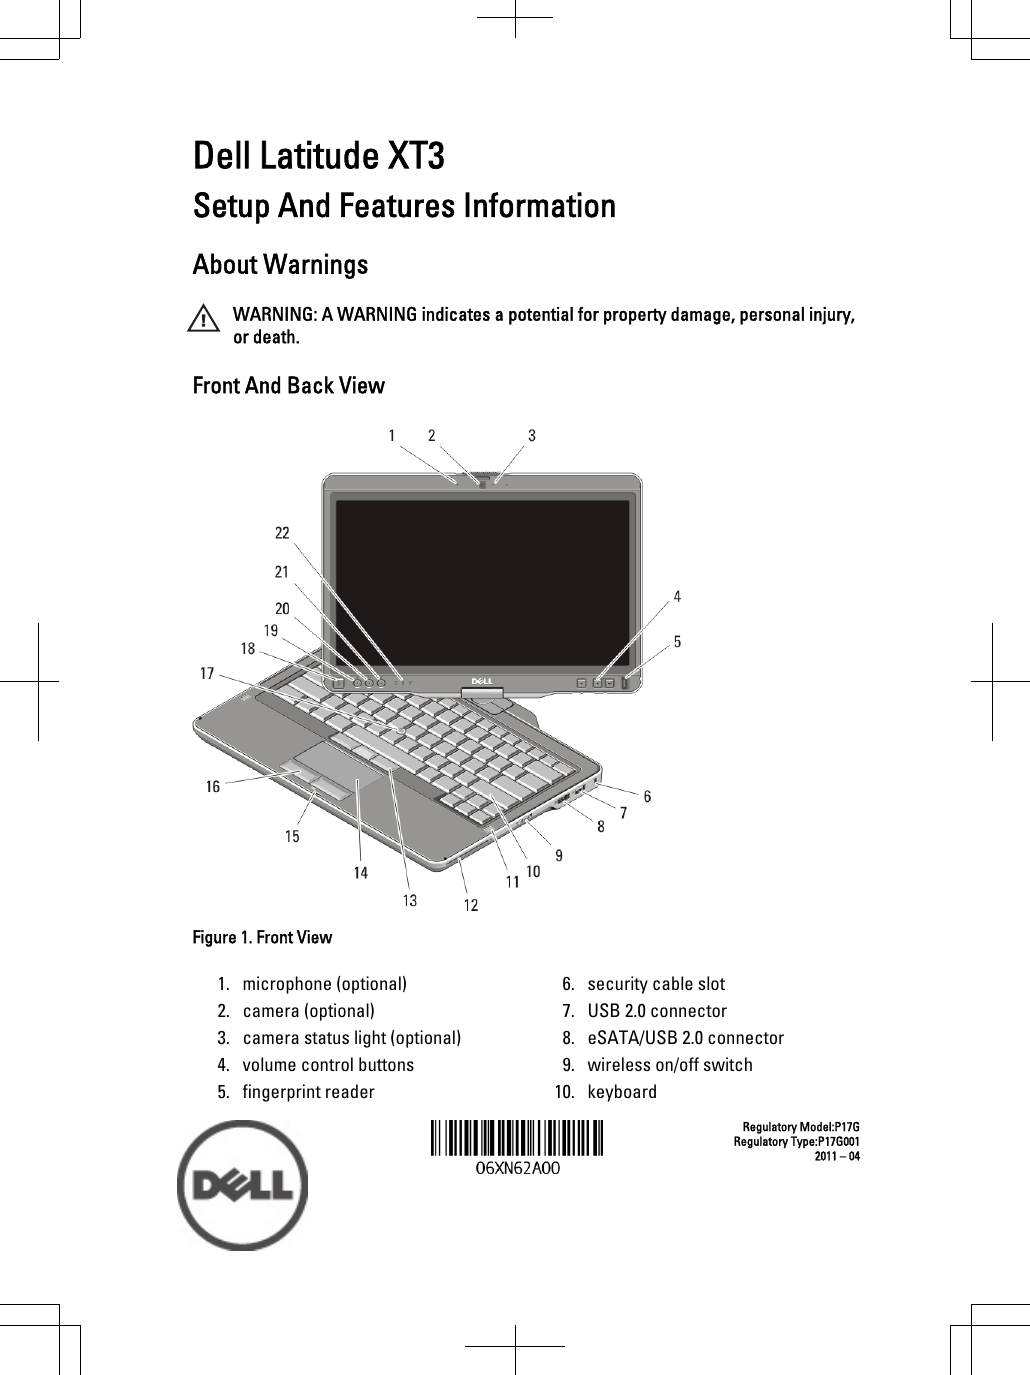 Dell Latitude Xt3 Mid 2011 Tech Sheet Setup And Features